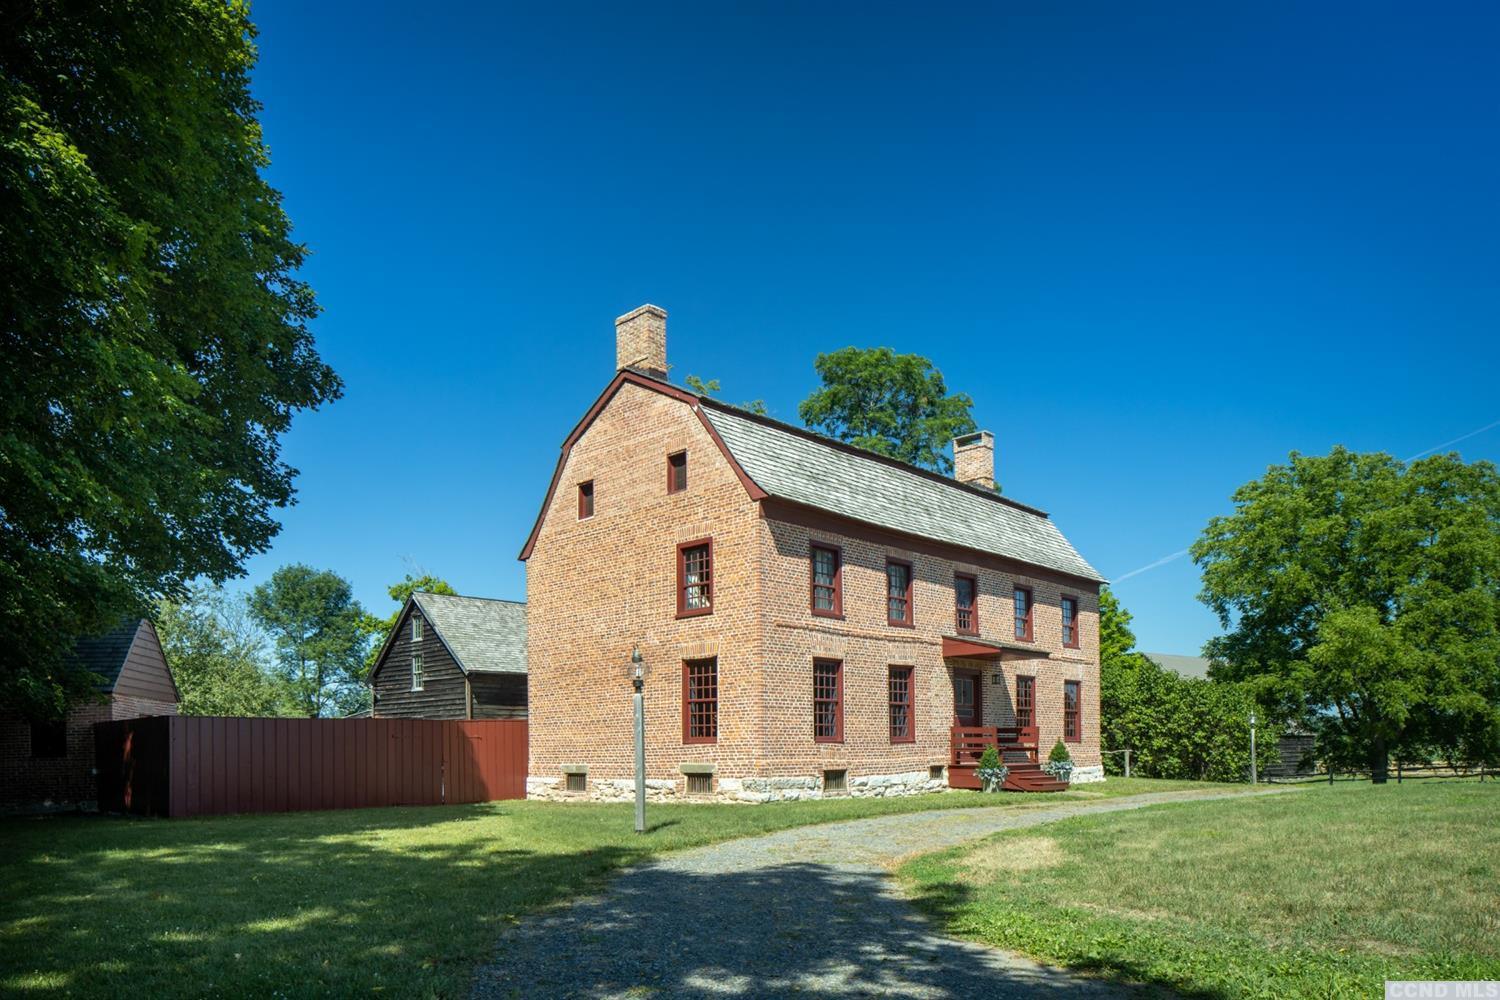 <div>Locust Dale Farm, known also as the Conyn-Van Rensselaer house, is an incredible example of a f